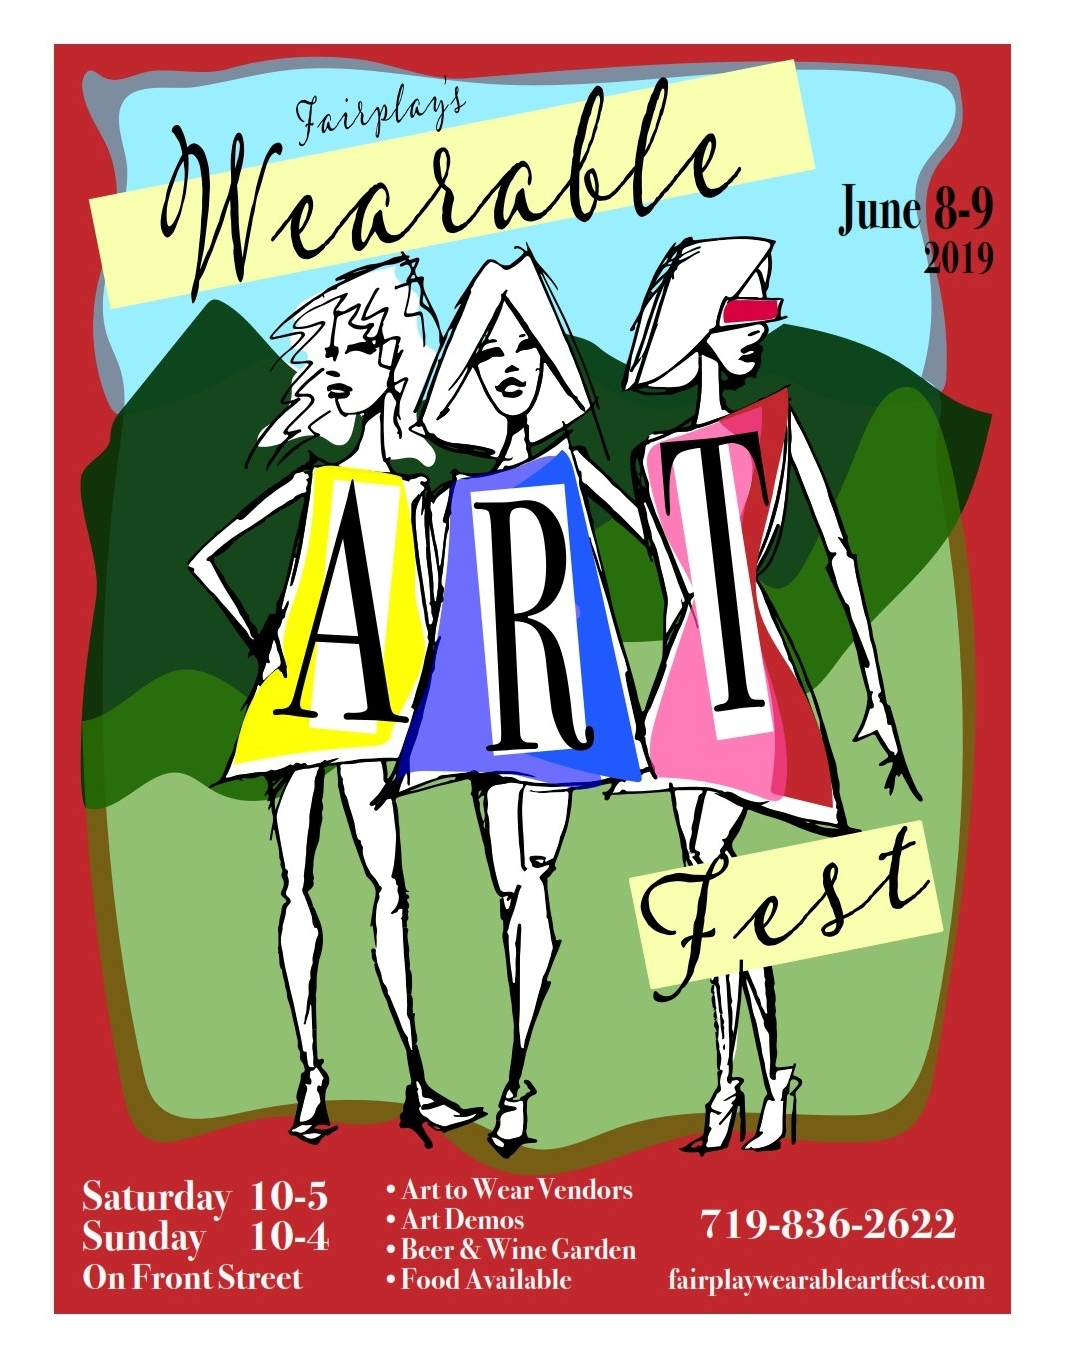 Fairplay Wearable Artfest in Colorado